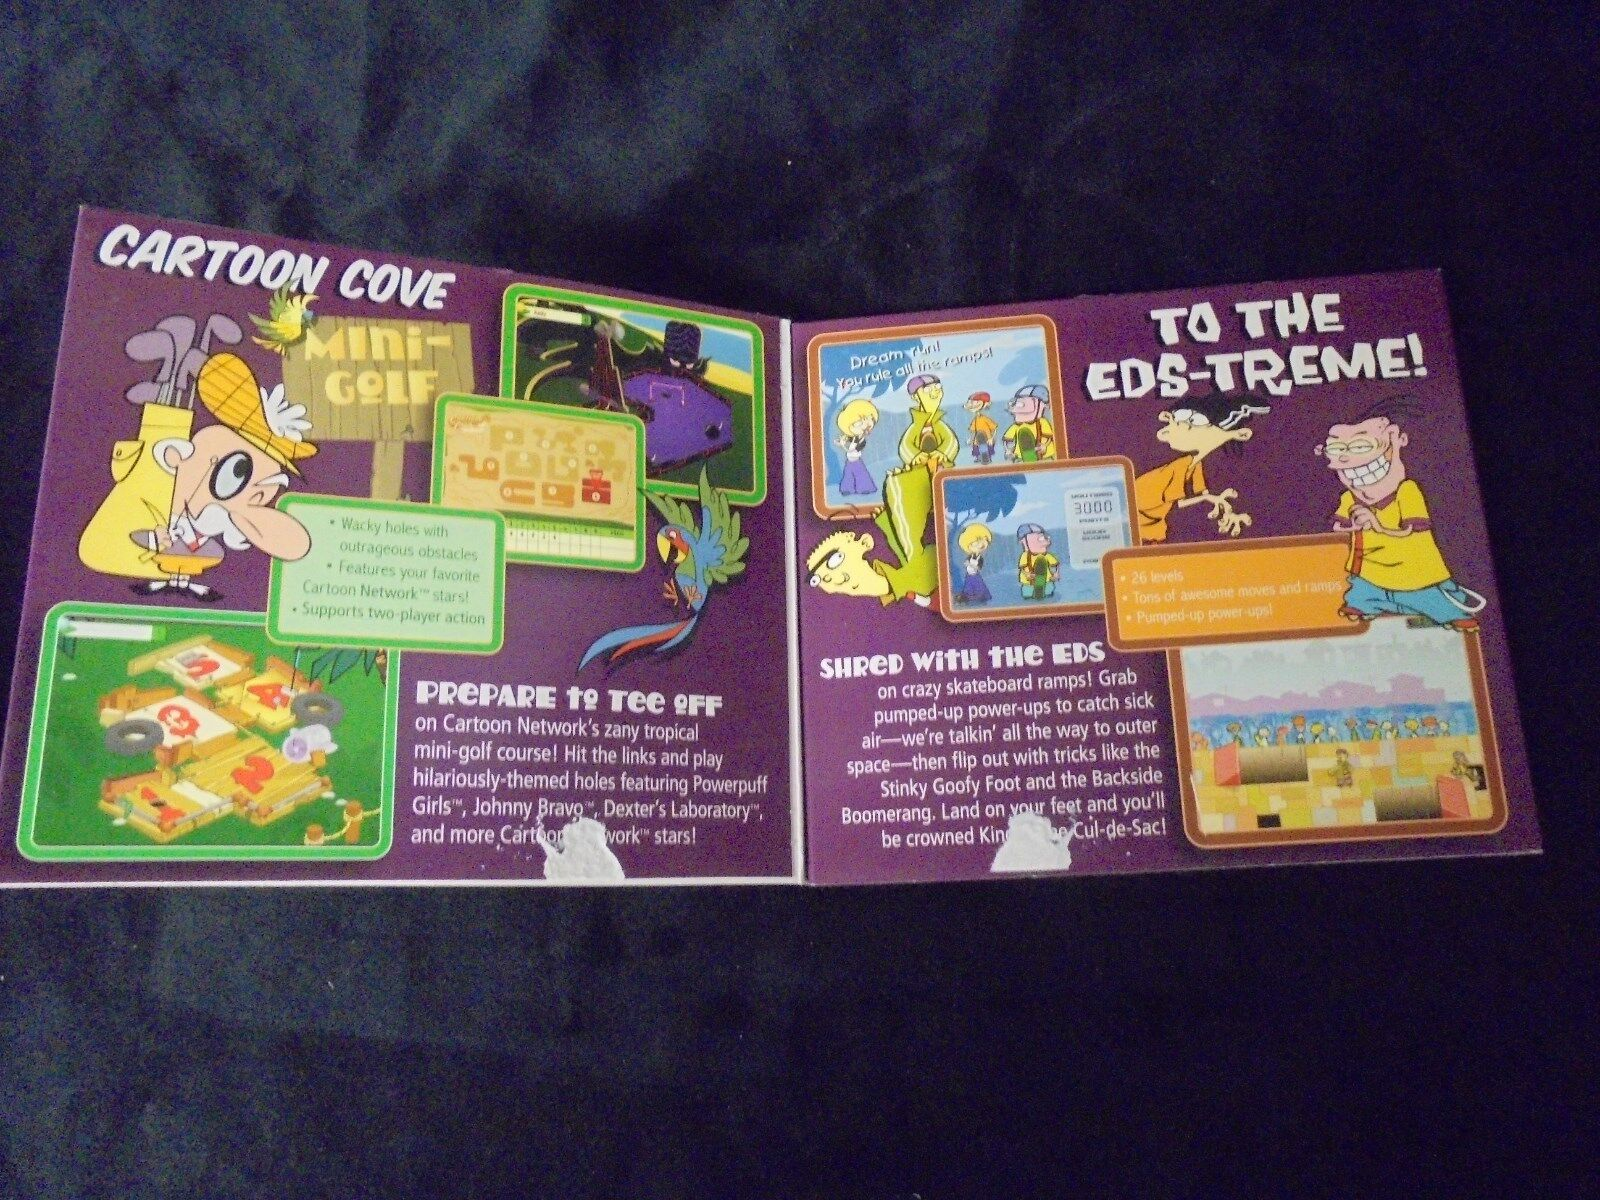 Cartoon Network Pc Cd Rom Quot Cartoon Cove Amp To The Eds Treme